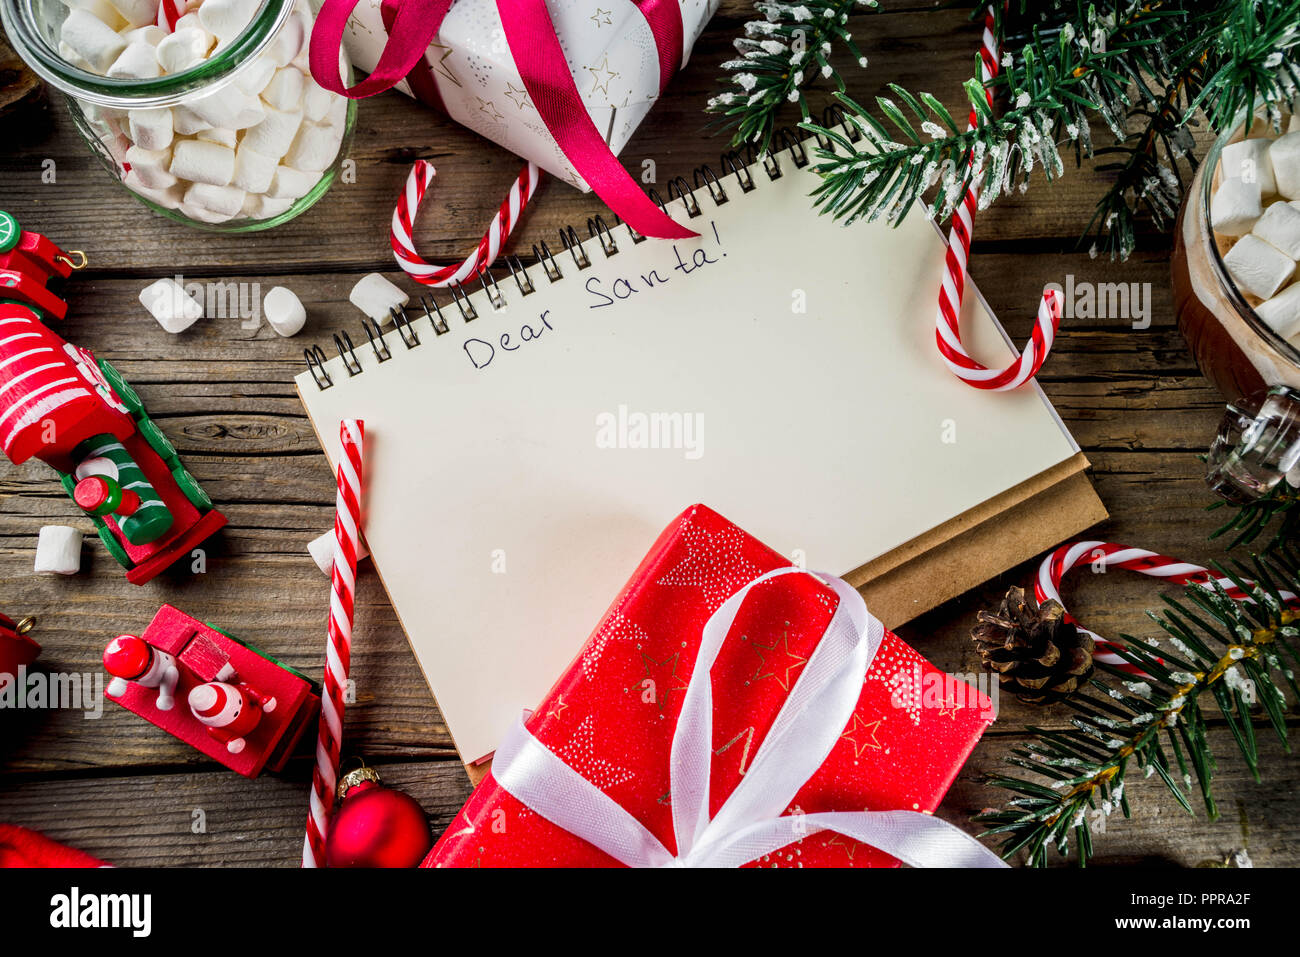 Christmas Concept Preparation For Xmas Holidays Notepad For Wish